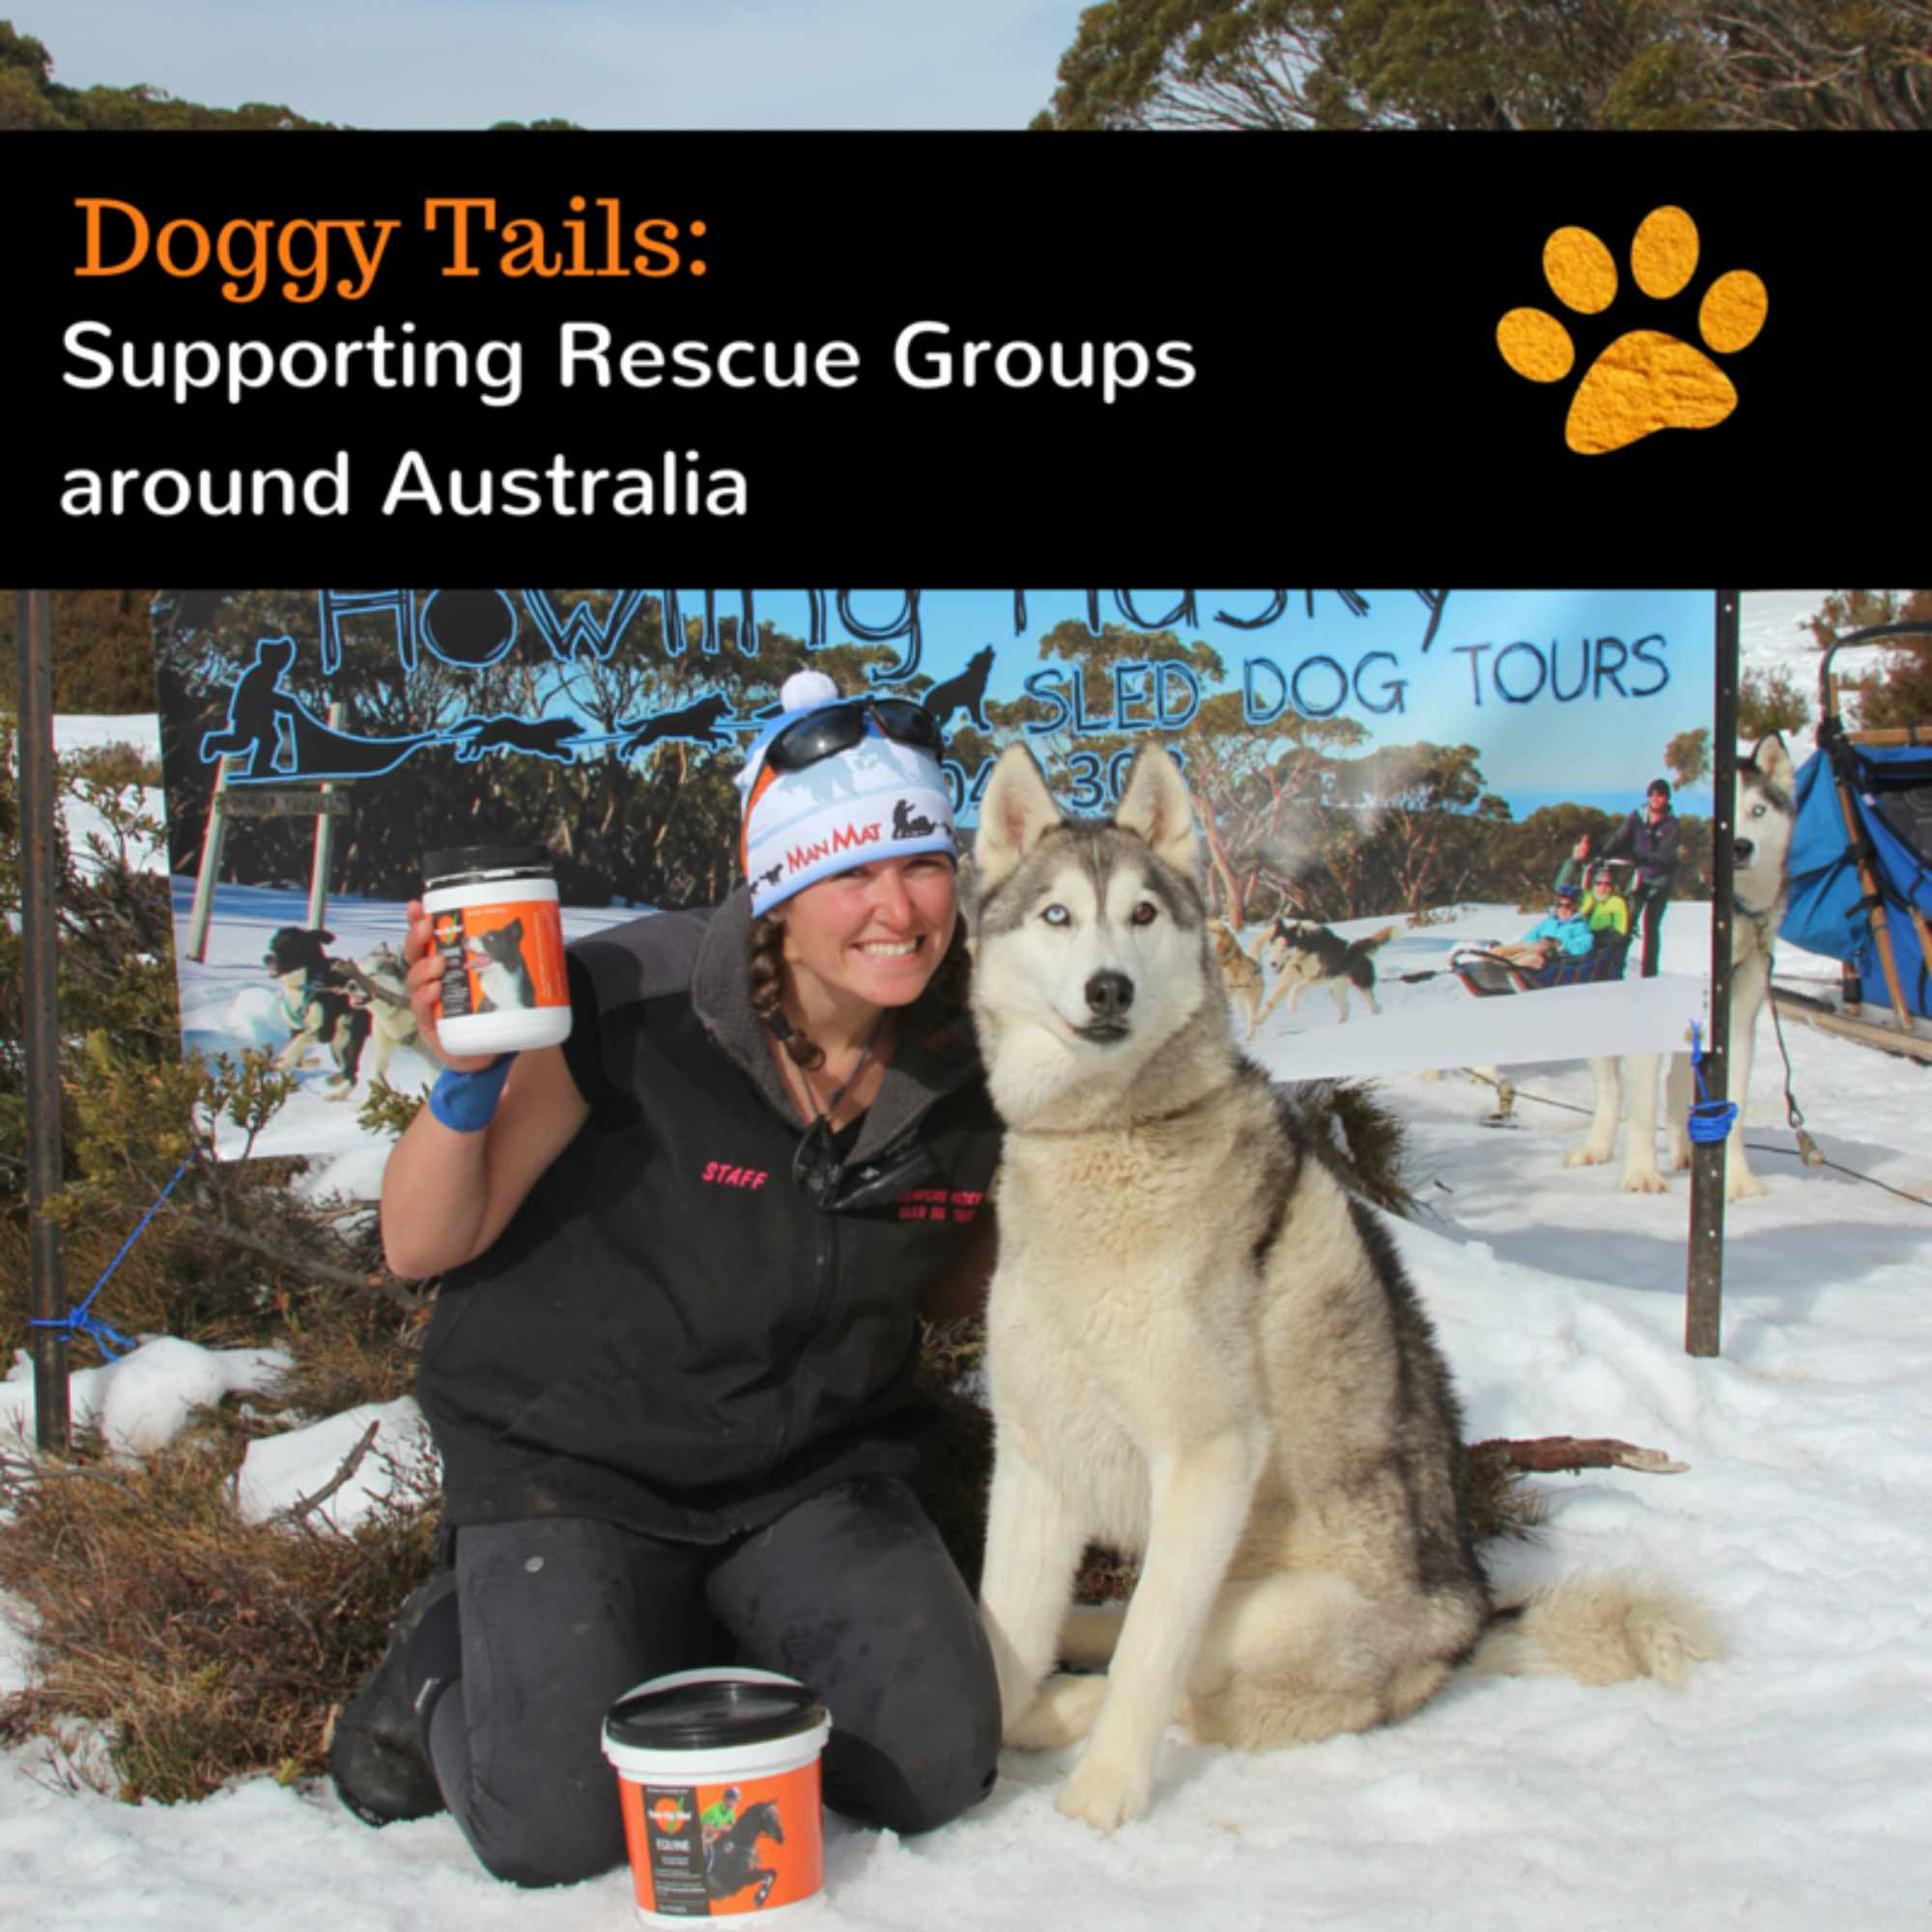 Supporting the work of Rescue Groups around Australia one paw at a time